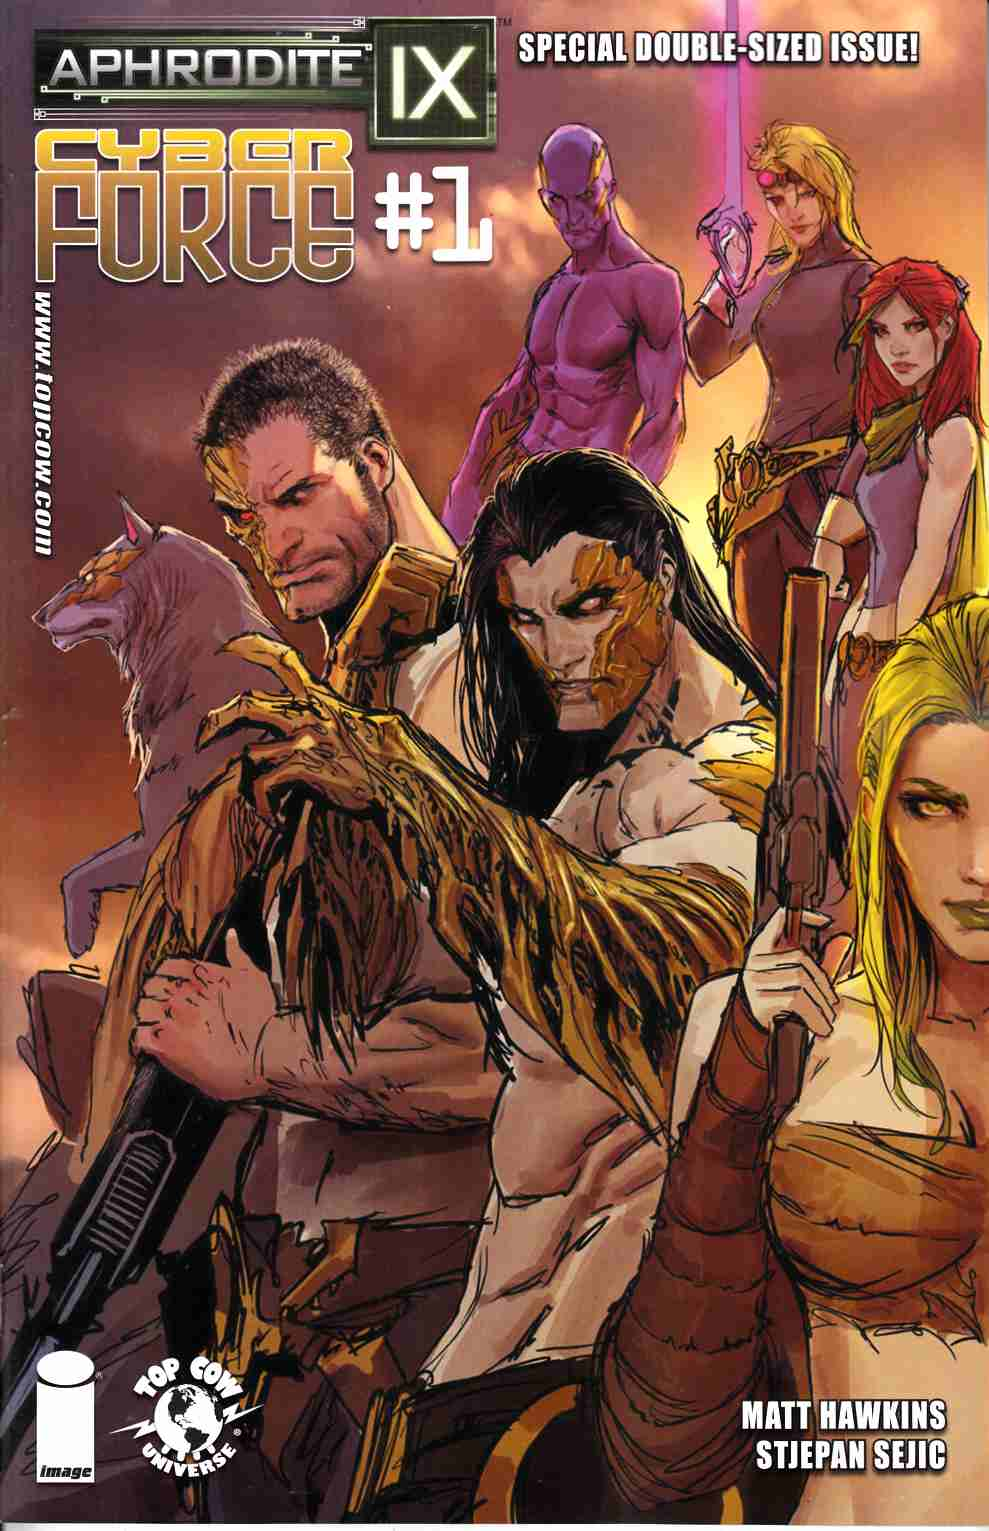 Aphrodite IX Cyber Force #1 Cover A- Sejic [Comic]_THUMBNAIL